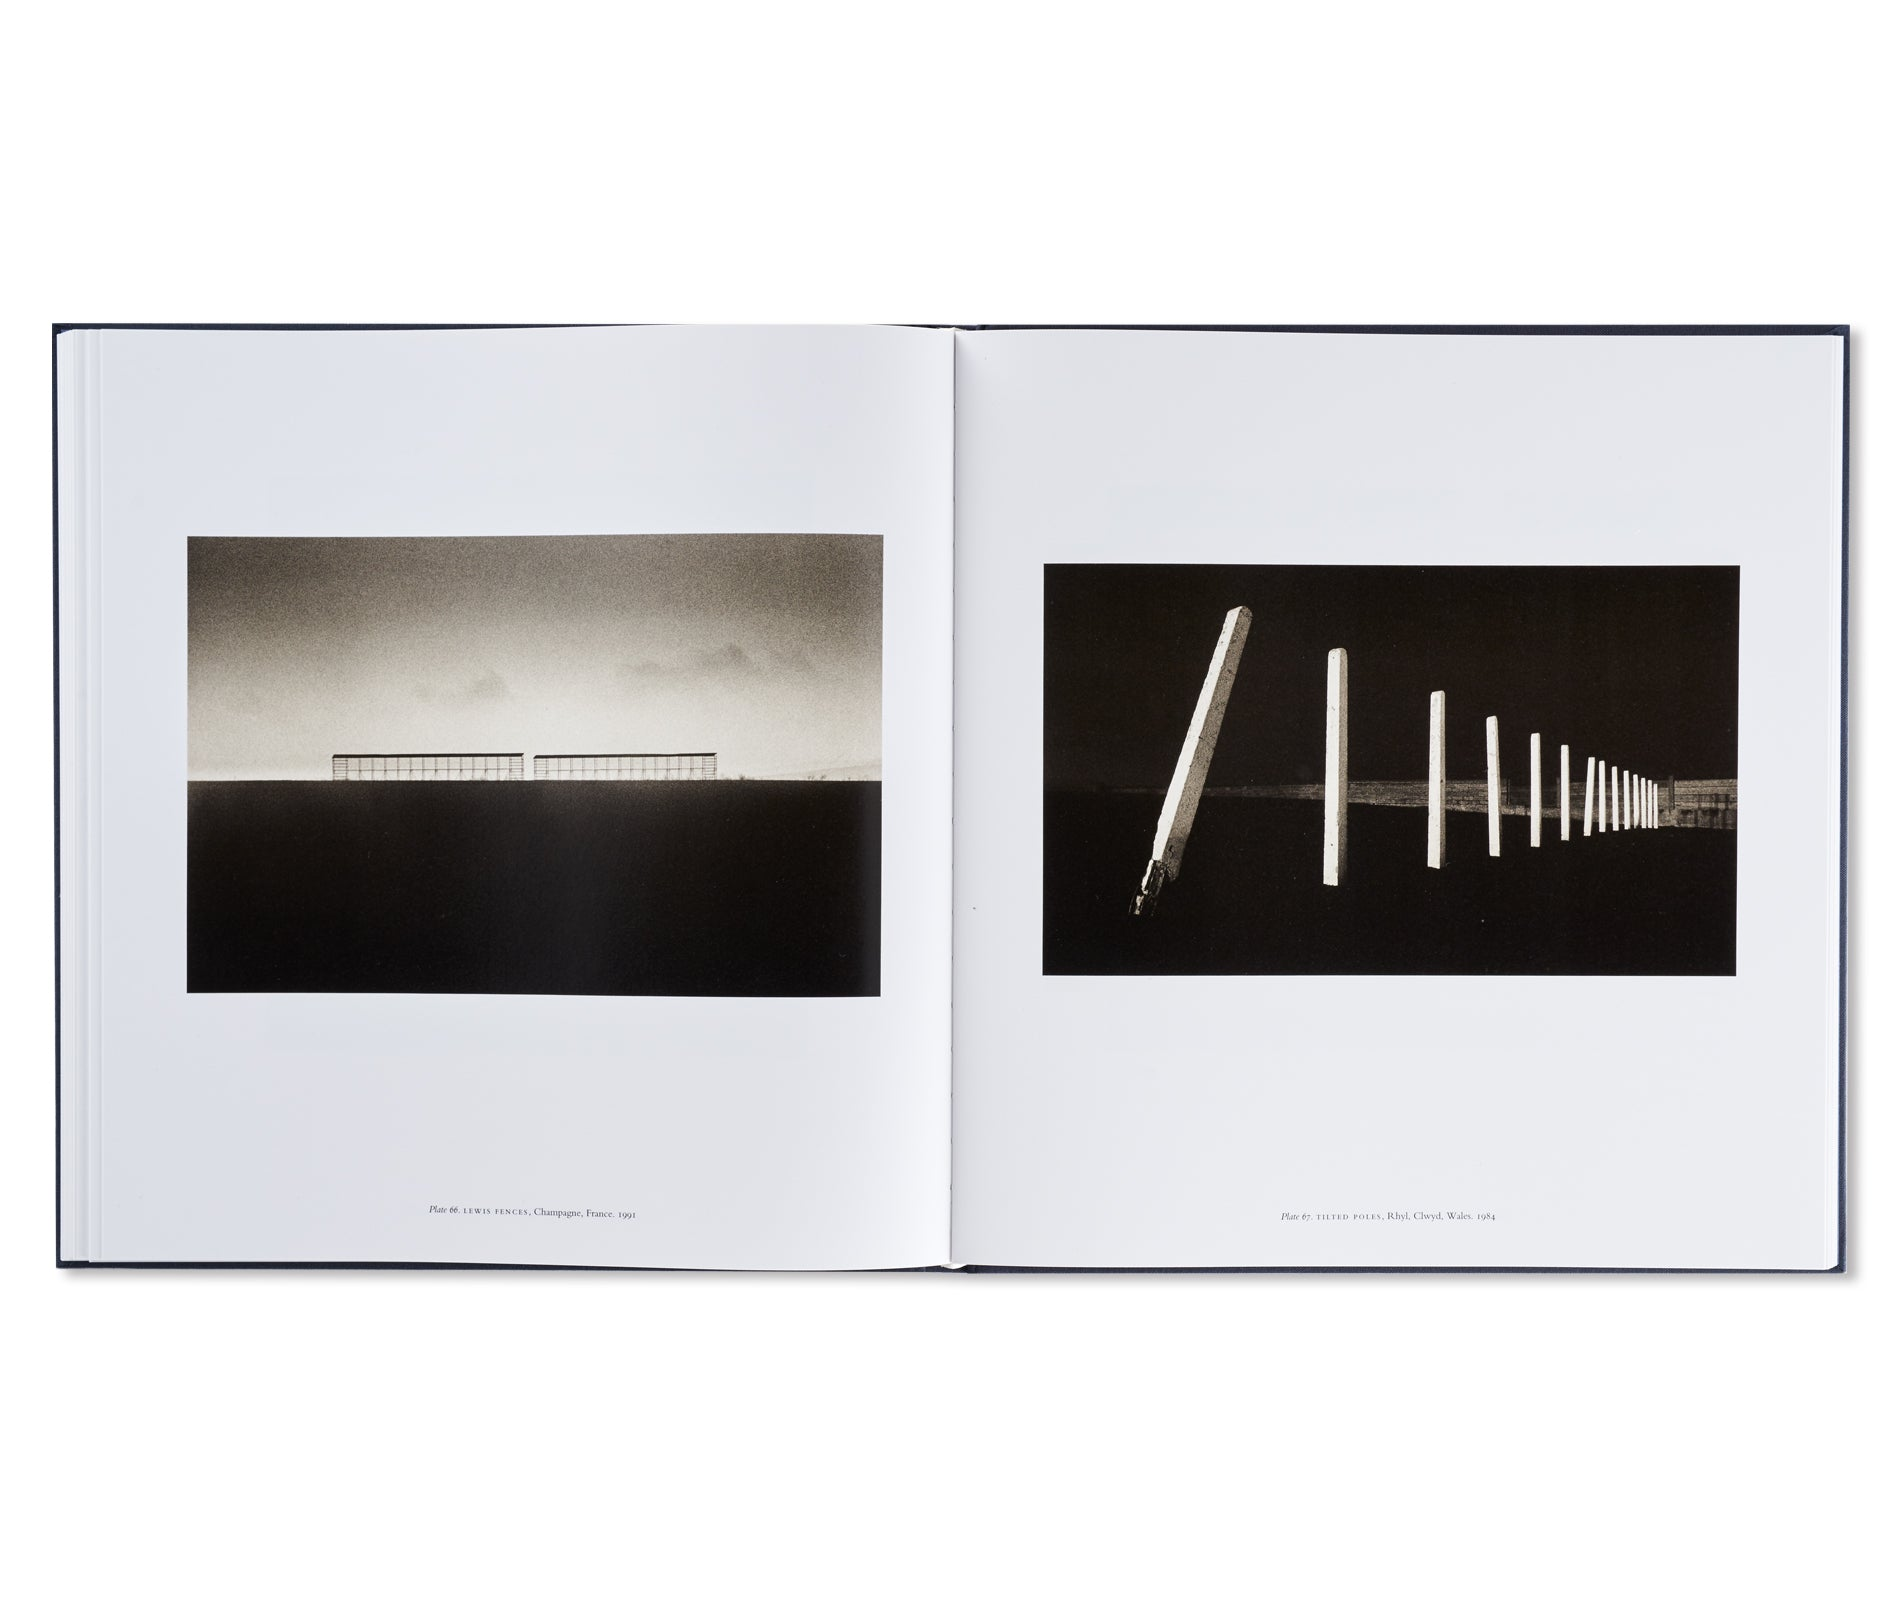 A TWENTY YEAR RETROSPECTIVE by Michael Kenna